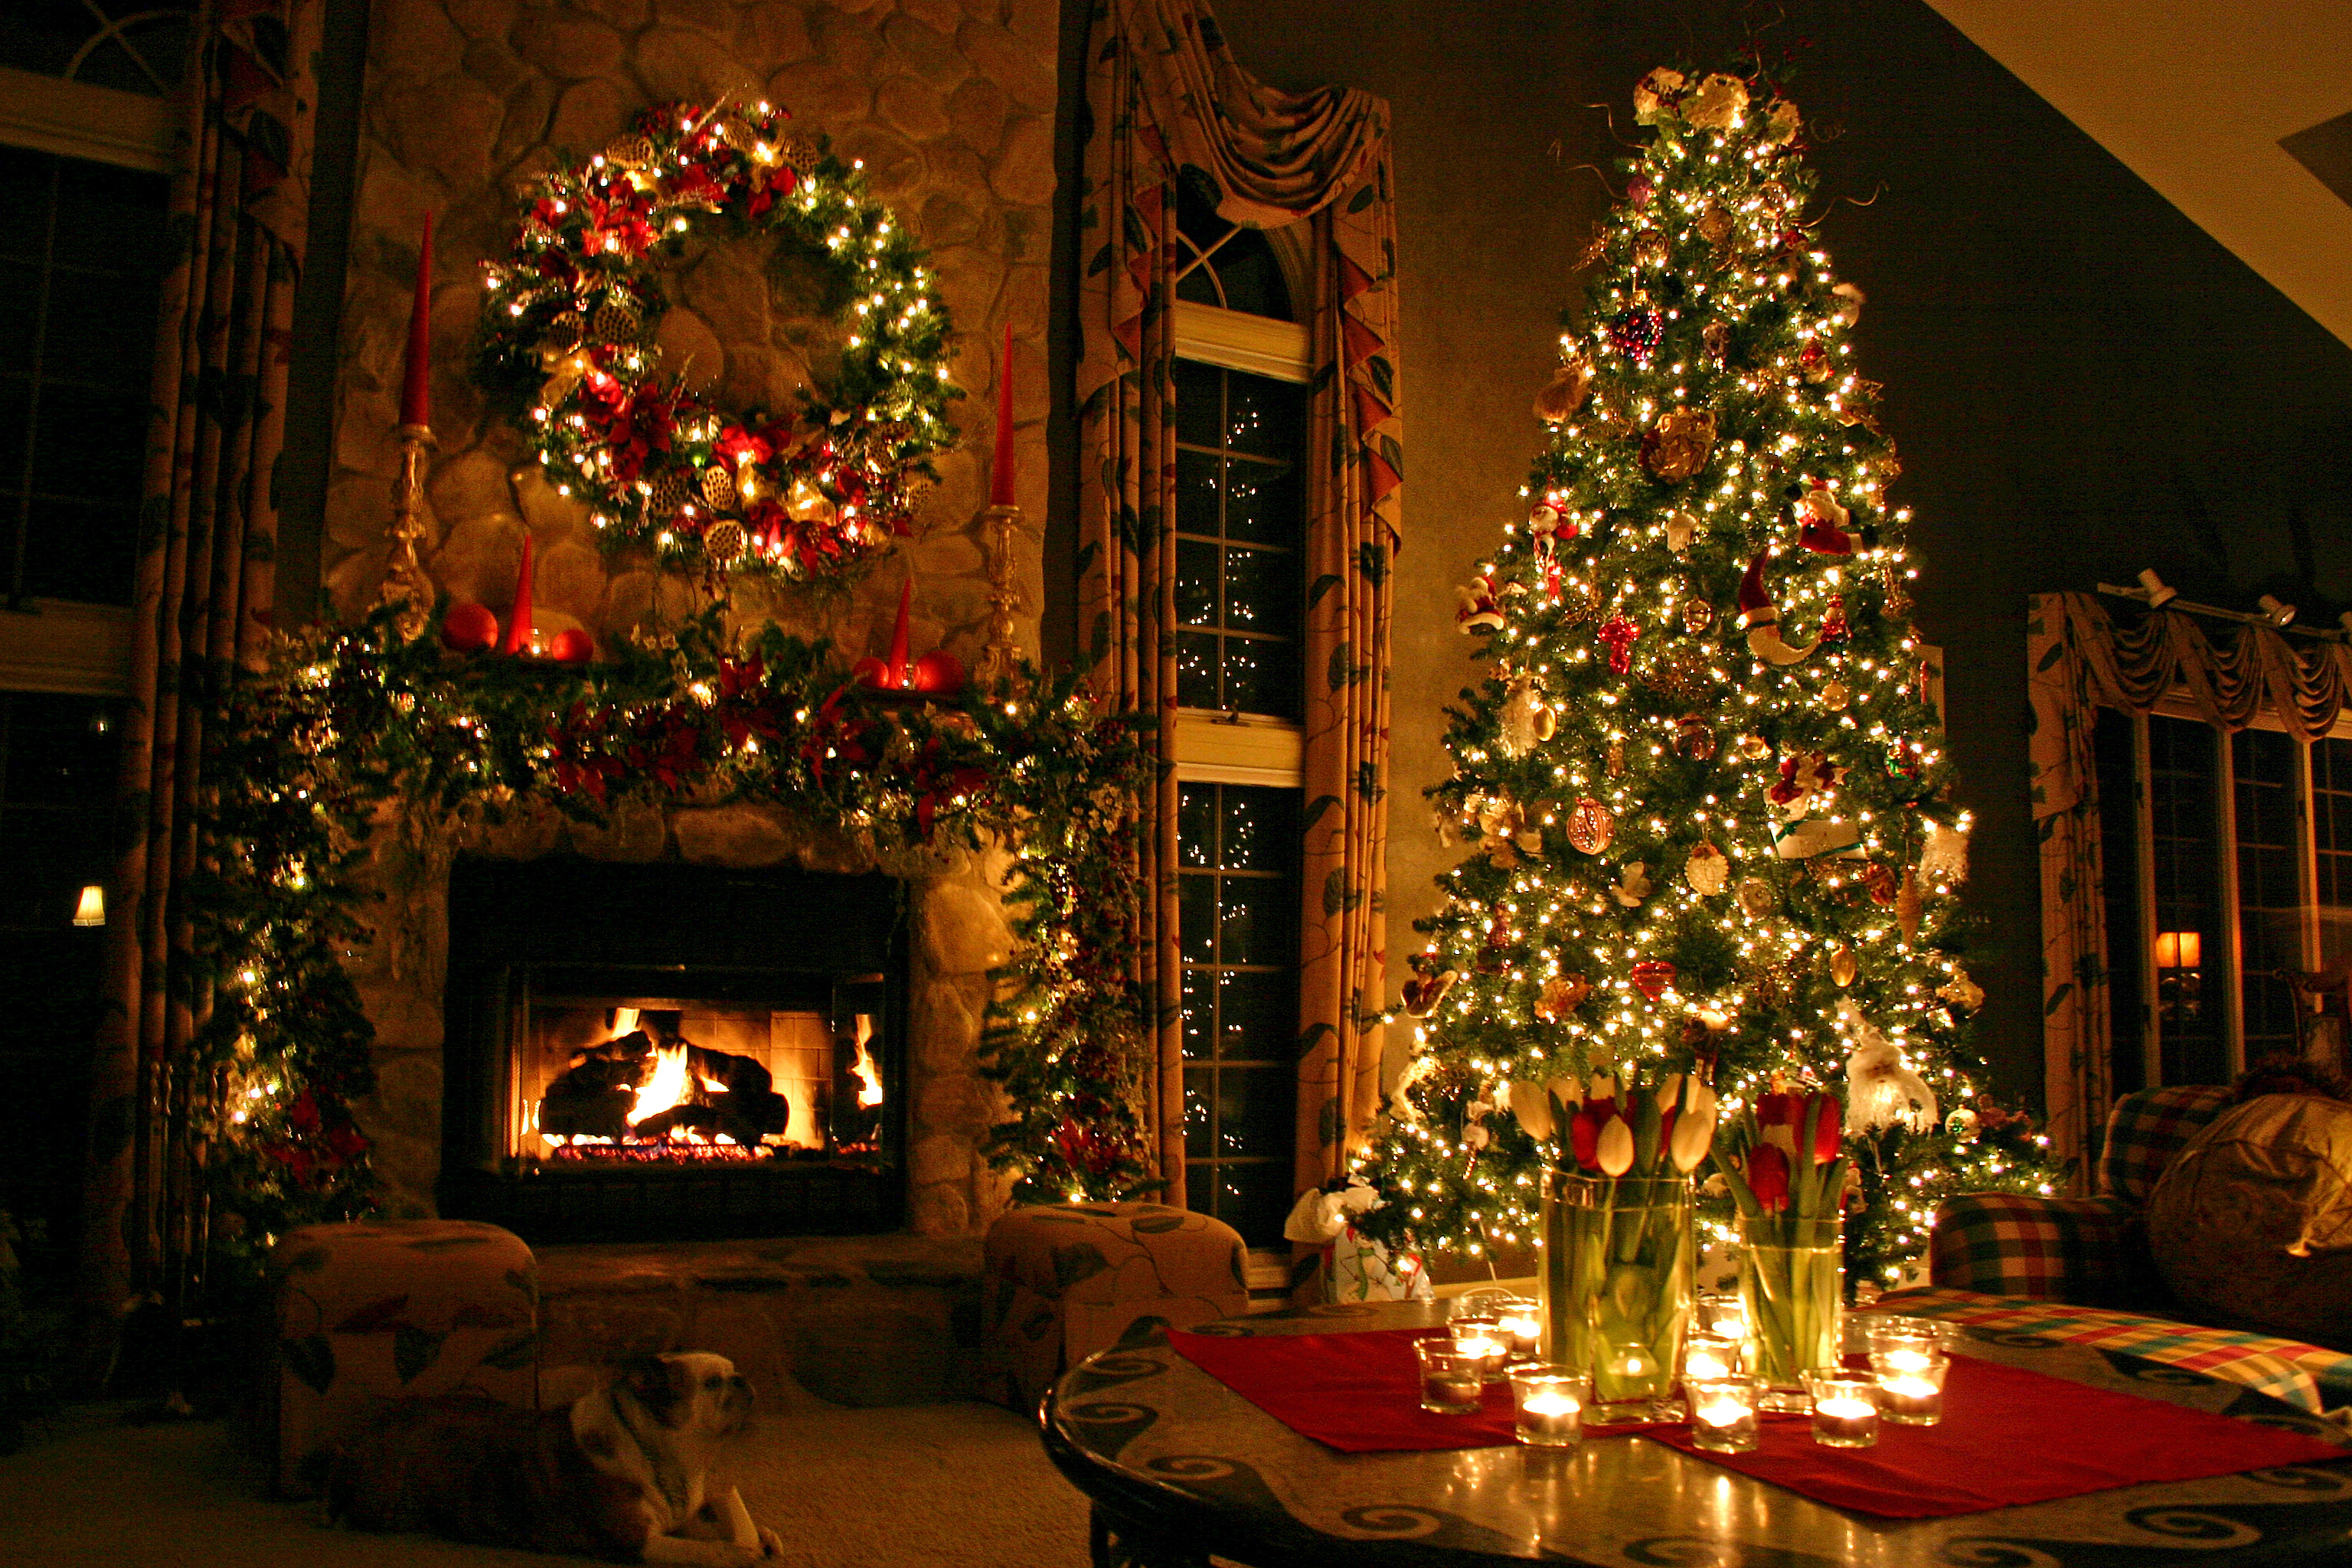 10 Christmas Tree Facts to Make You Feel Festive | The List Love